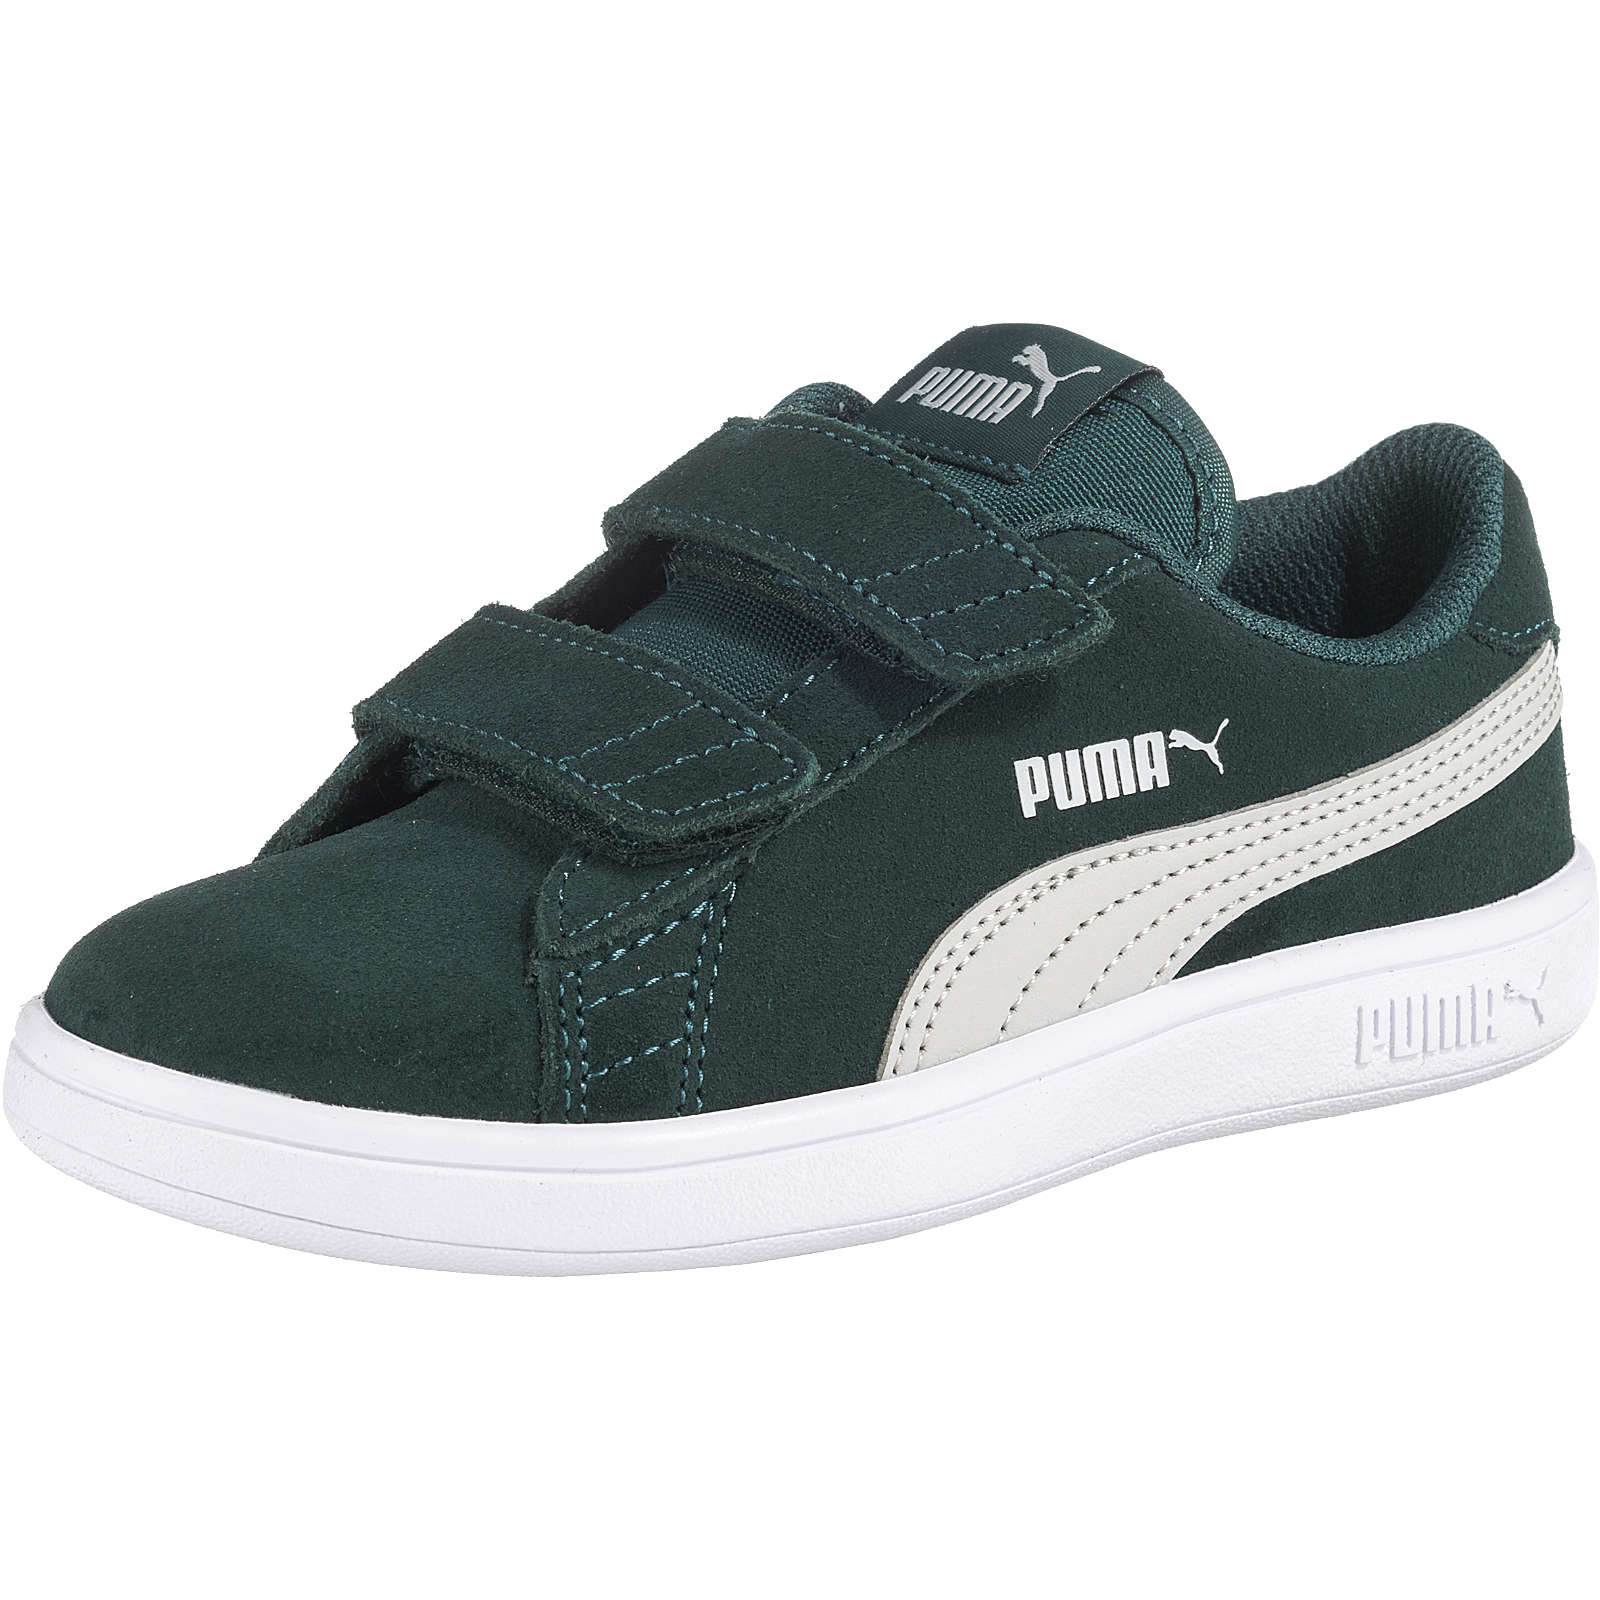 PUMA Kinder Sneakers low SMASH V2 SD V PS grün Gr. 33